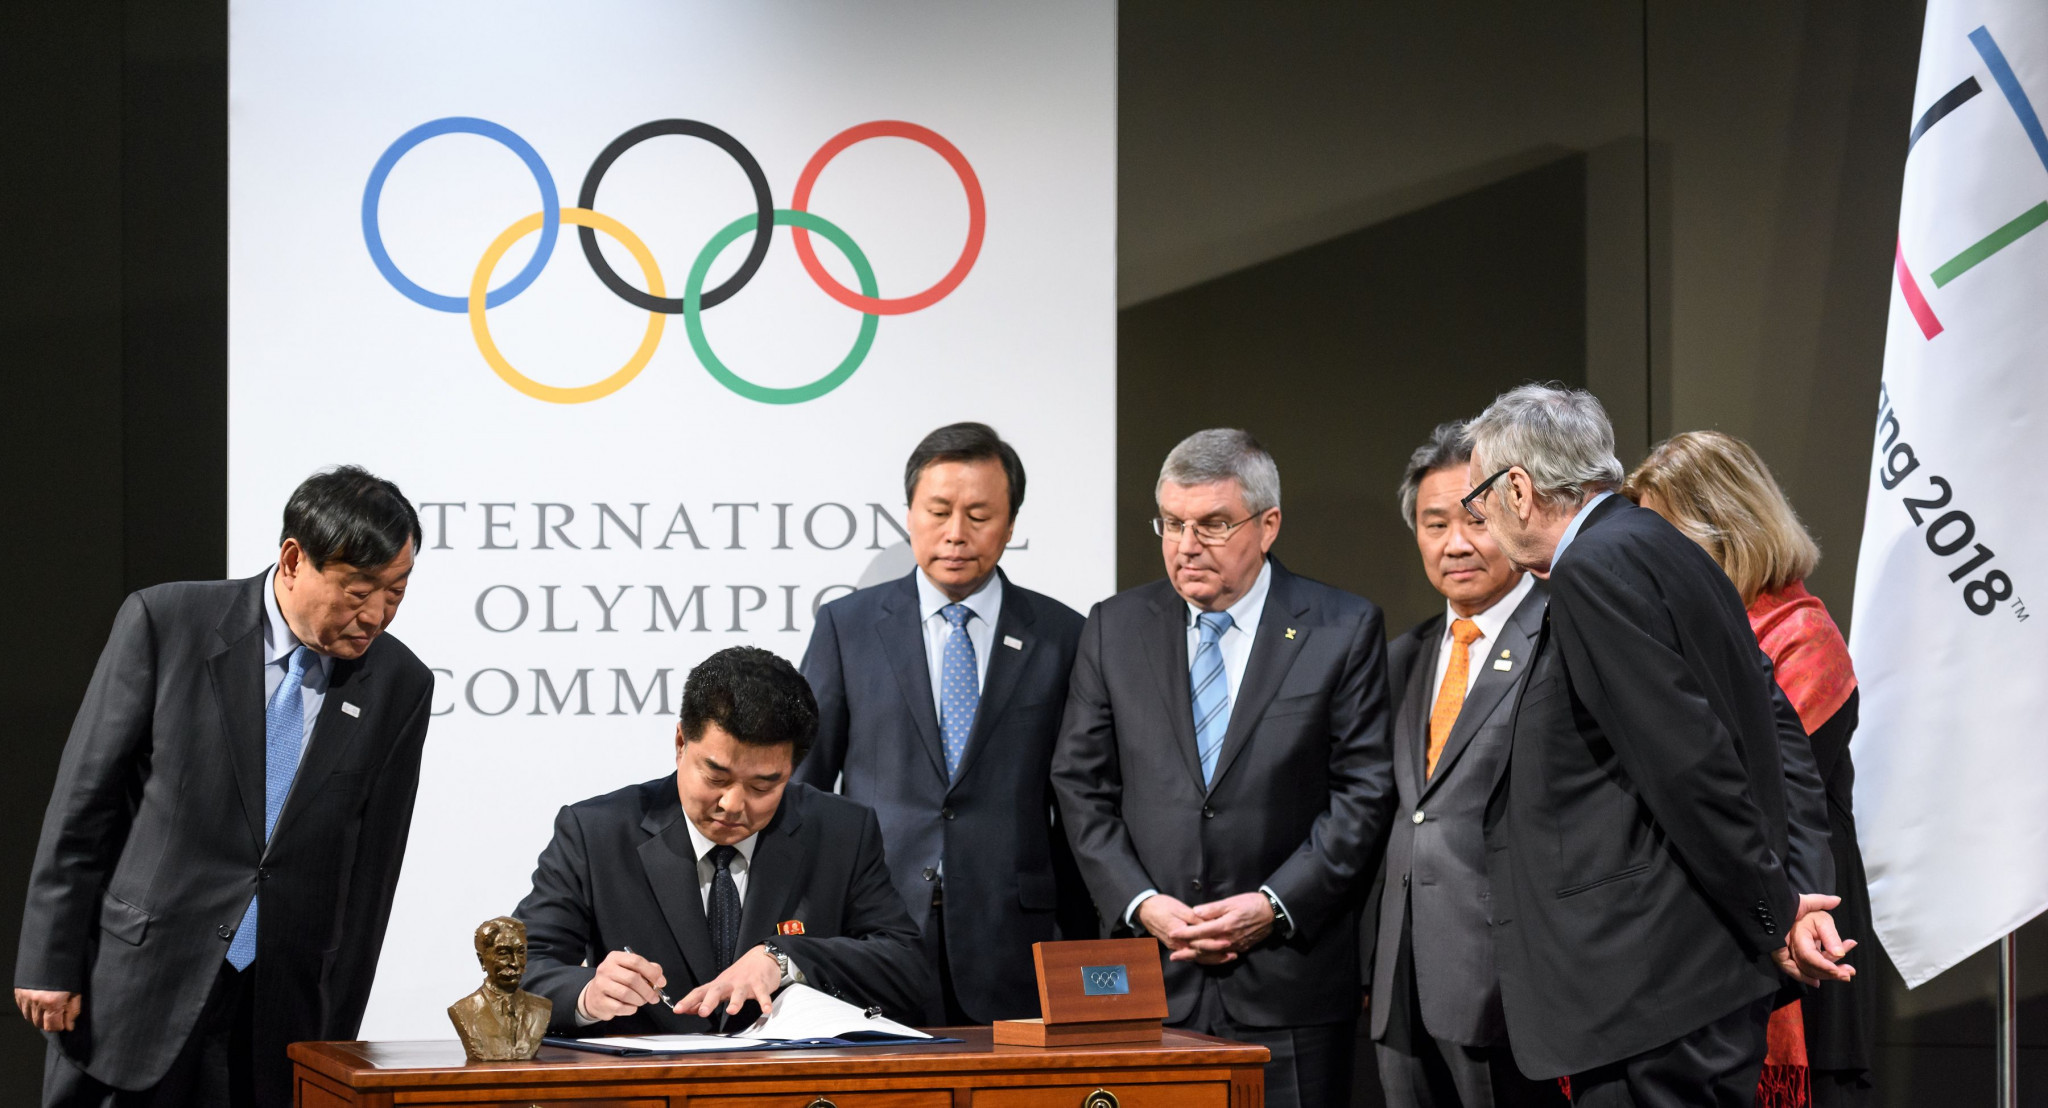 Thomas Bach, fourth left, pictured with representatives from North and South Korea signing their Olympic participation deal for Pyeongchang 2018 in Lausanne in January ©Getty Images